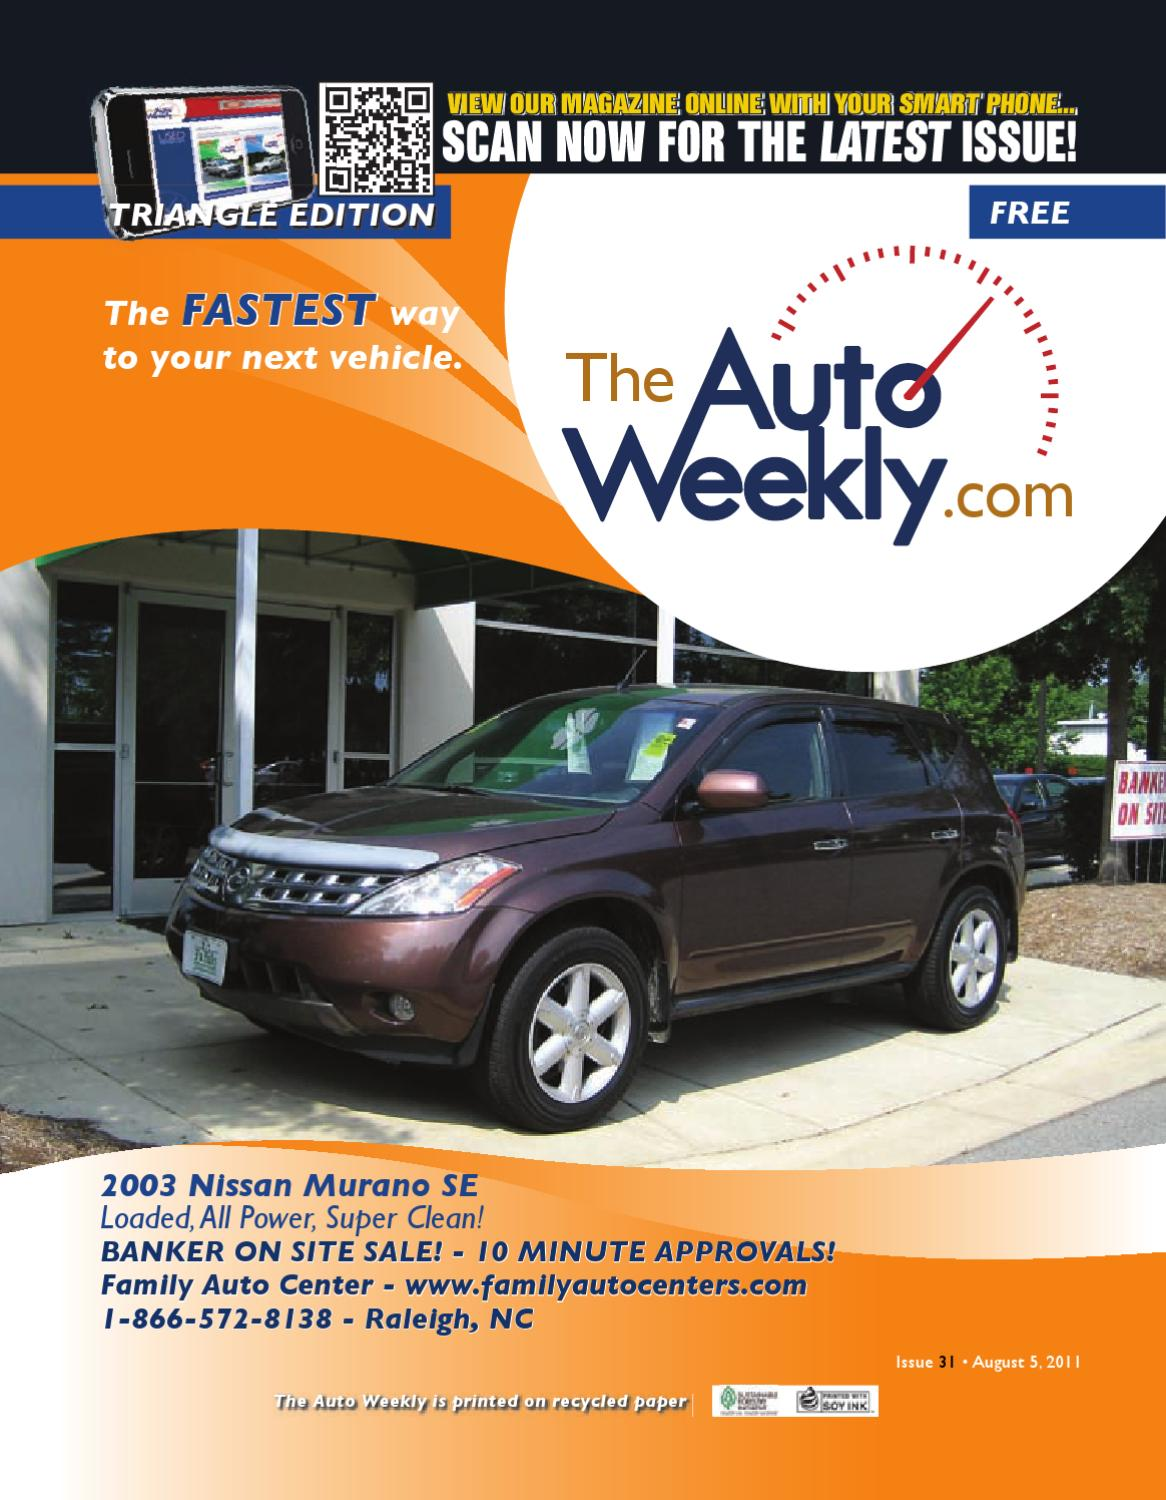 Issue 1131a Triangle Edition The Auto Weekly By Issuu Buick Rendezvous Cxl 2002 Electric Seat Issues